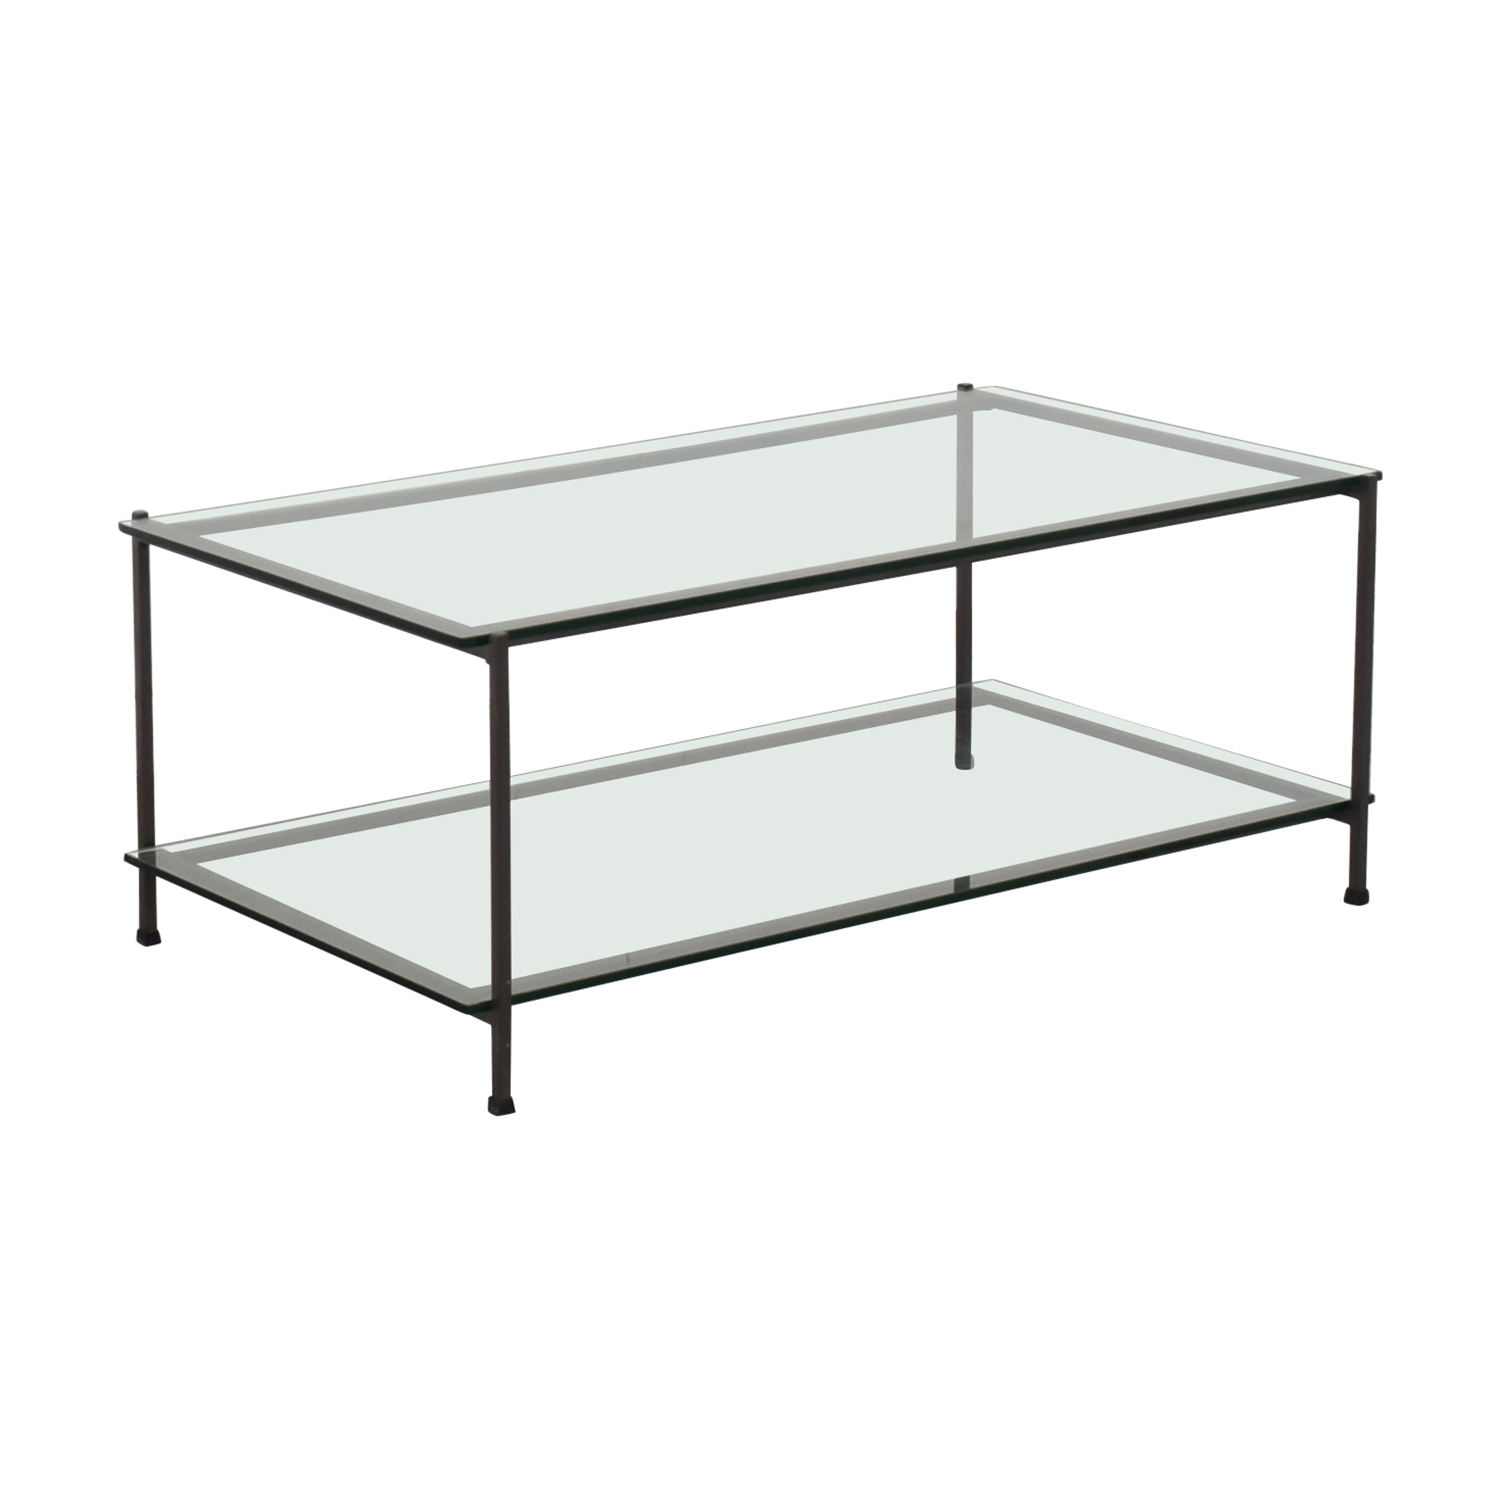 West Elm Glass Coffee Table / Coffee Tables